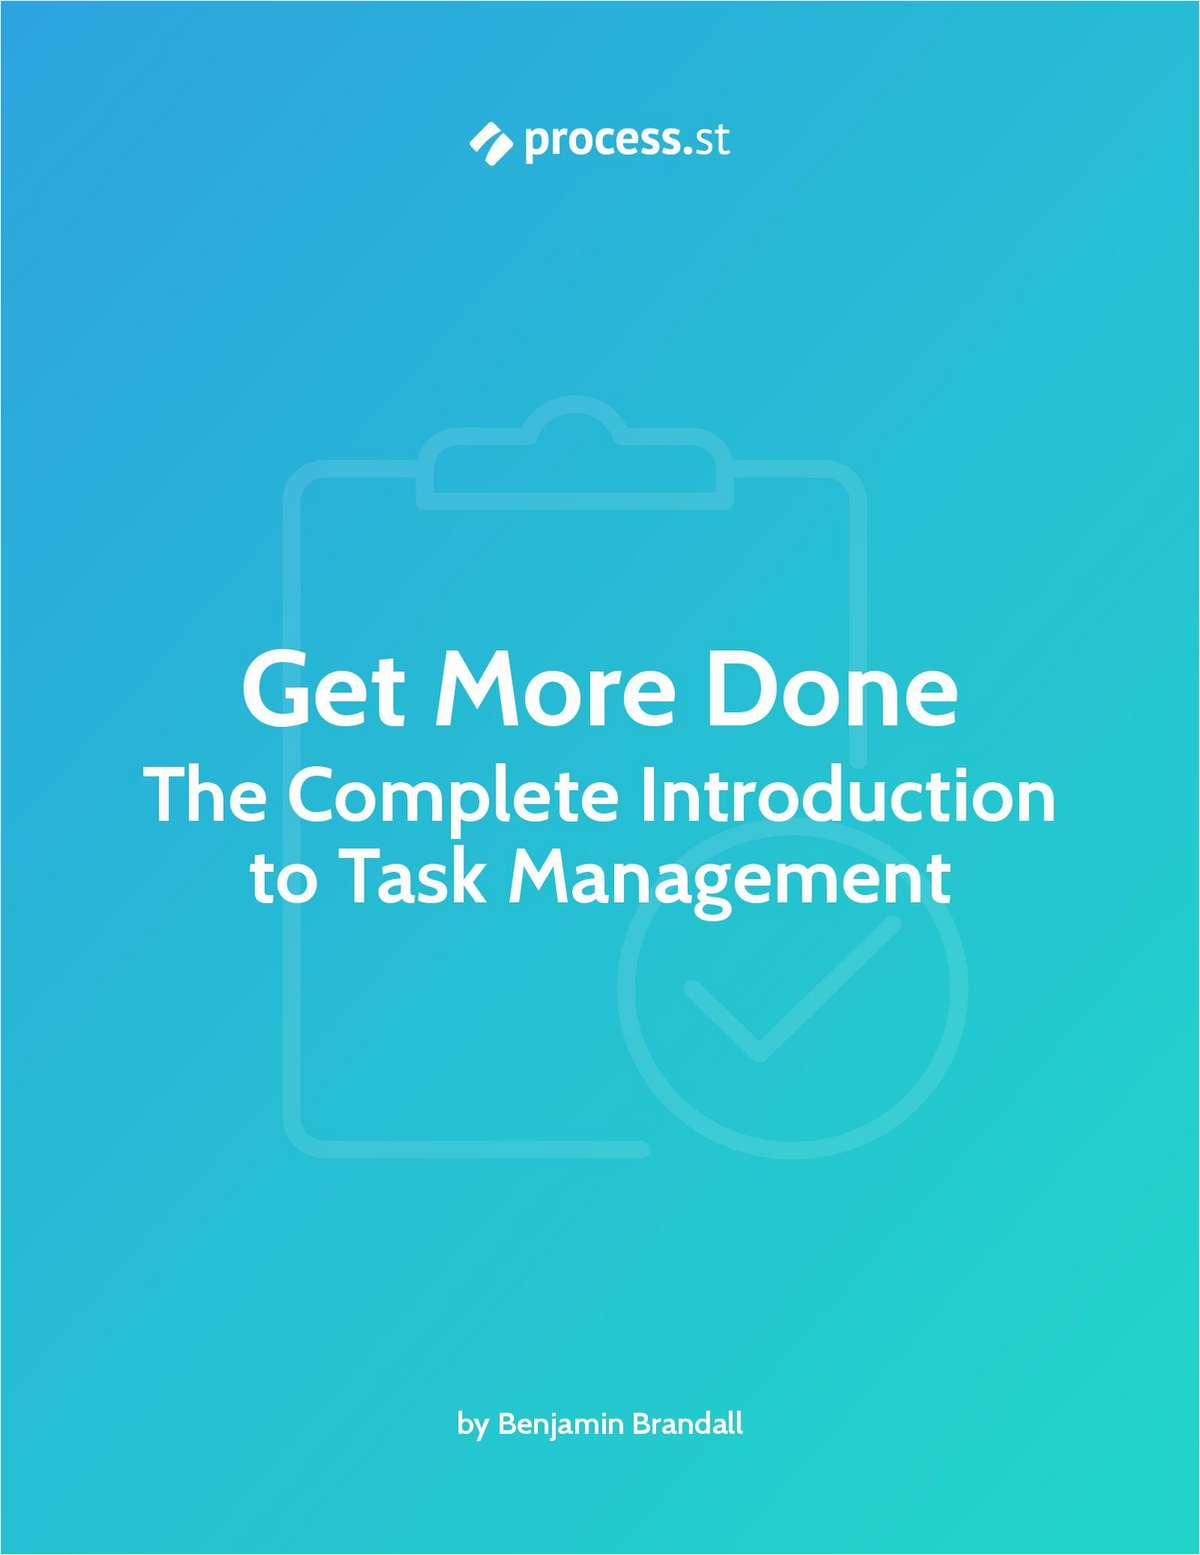 Get More Done: The Complete Introduction to Task Management